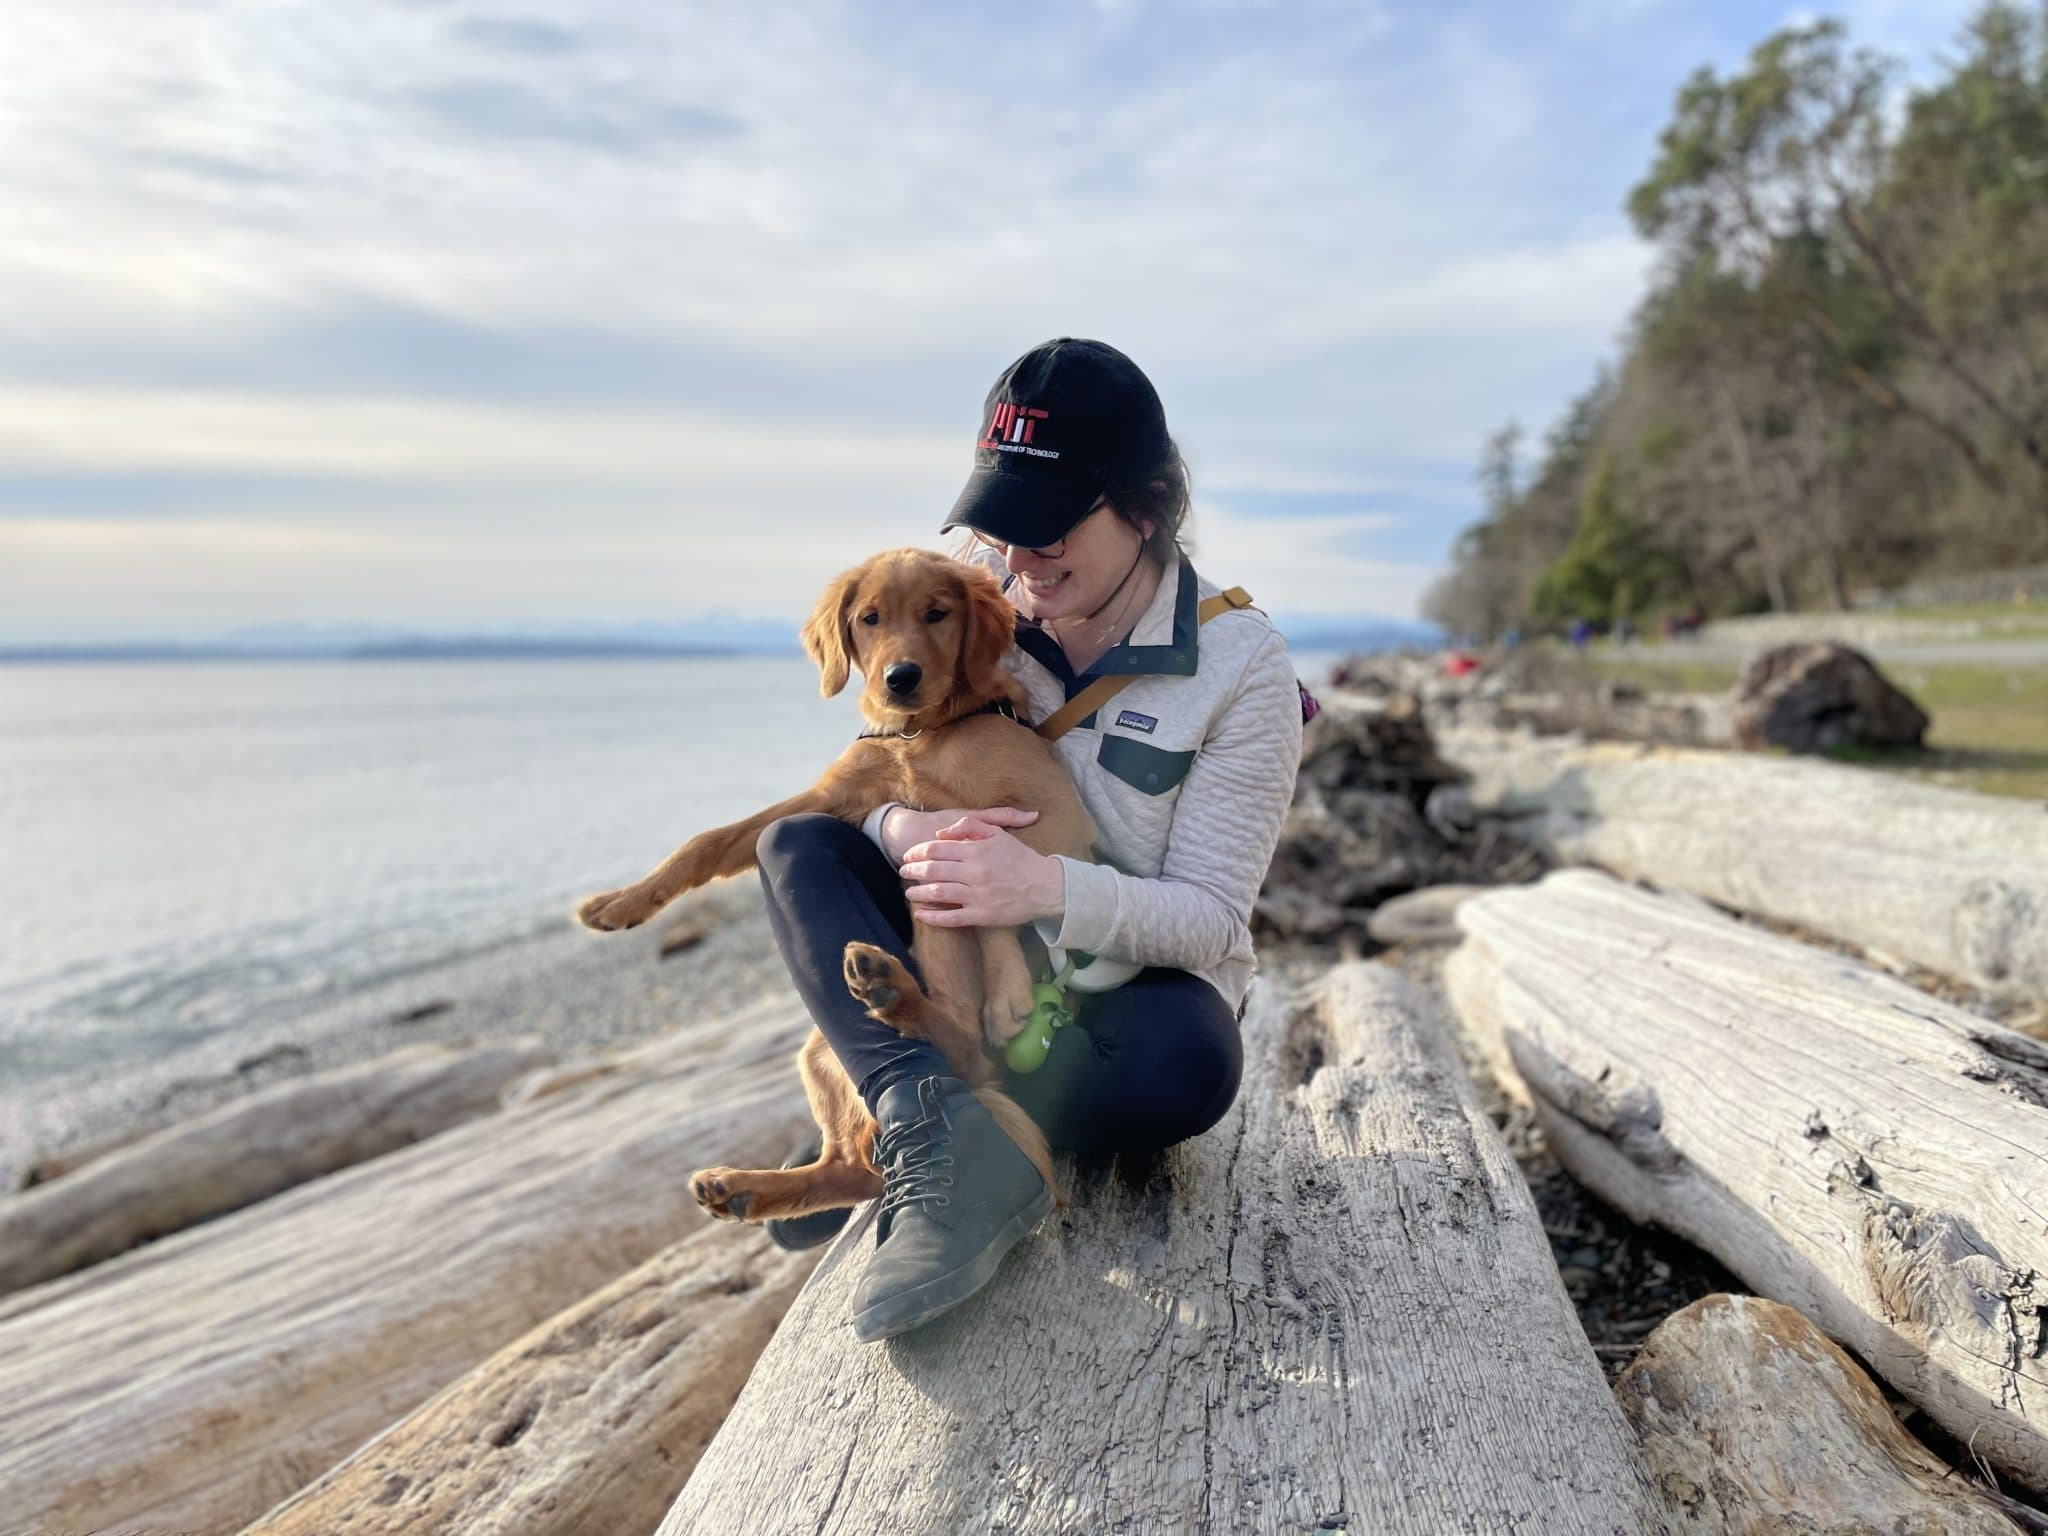 A woman on a long log, with her dog on the beach